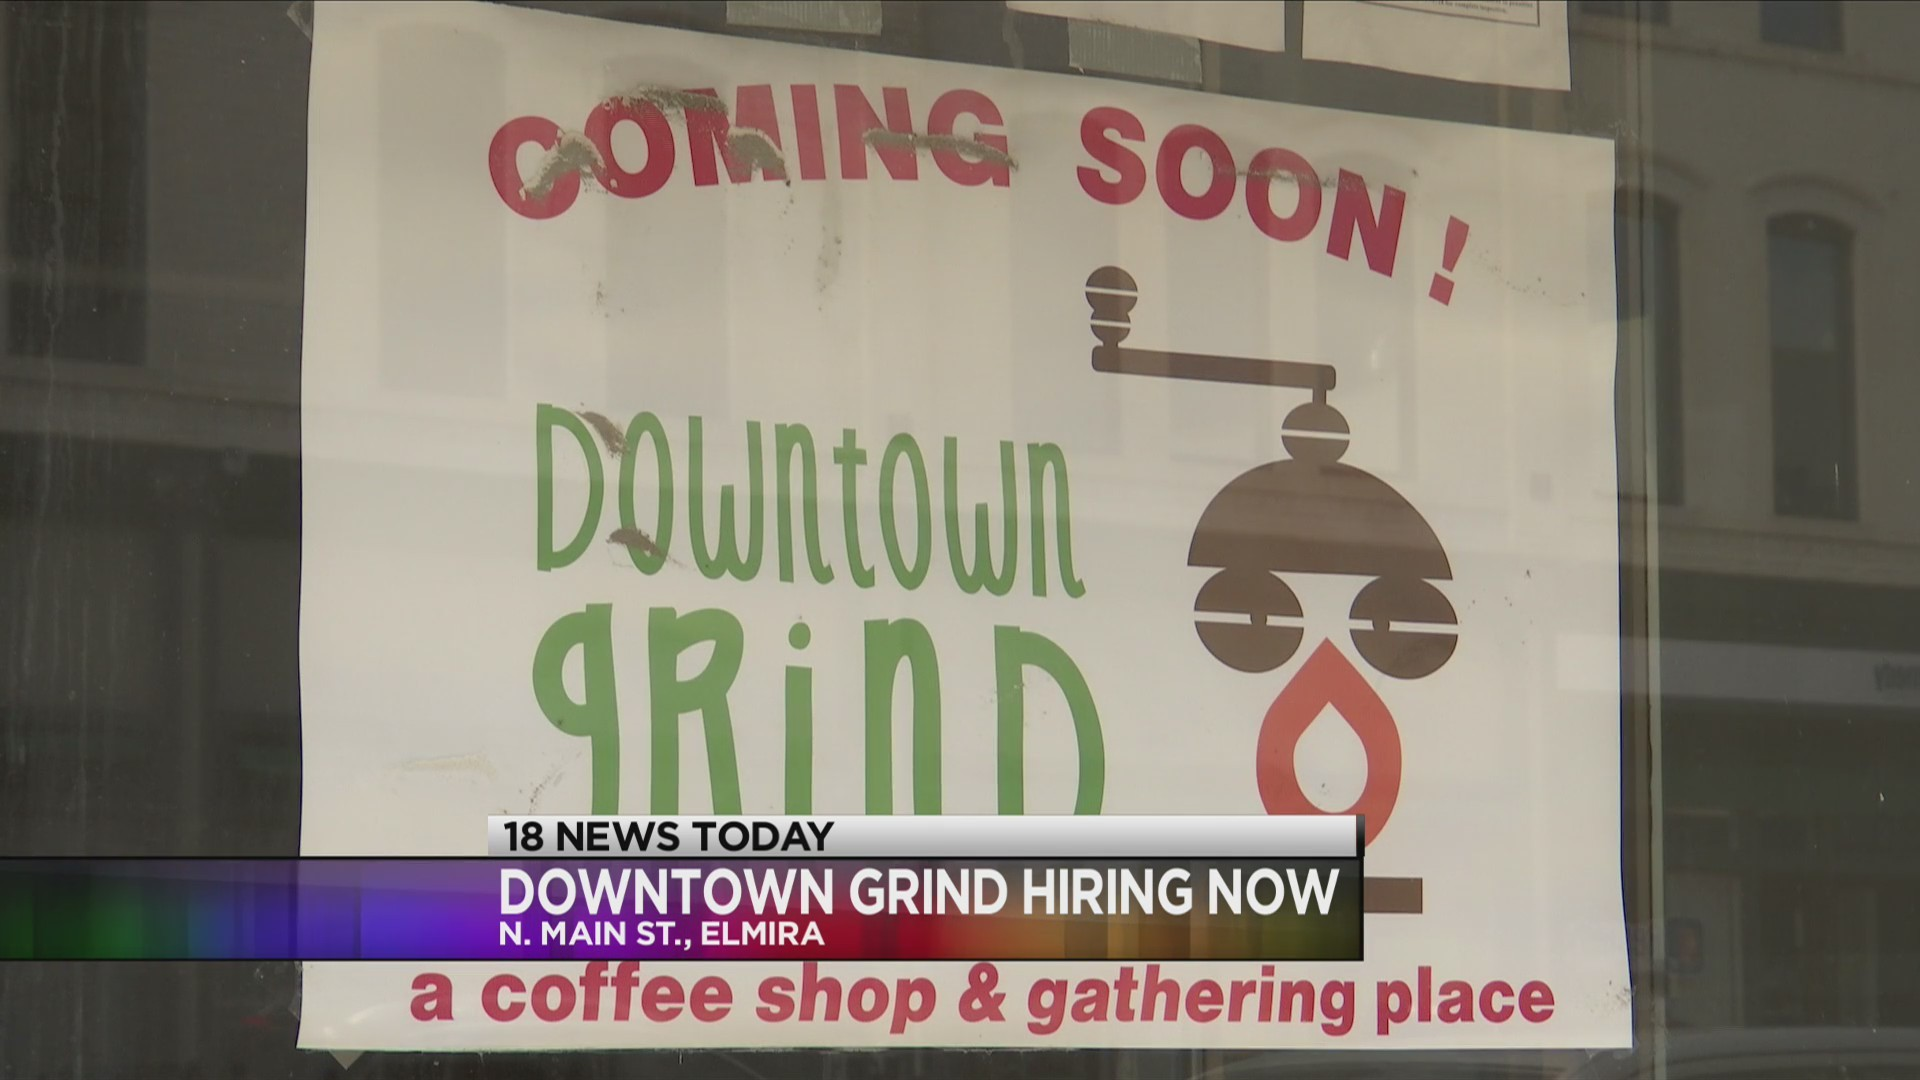 Newest coffee shop in town 'Downtown Grind' is hiring